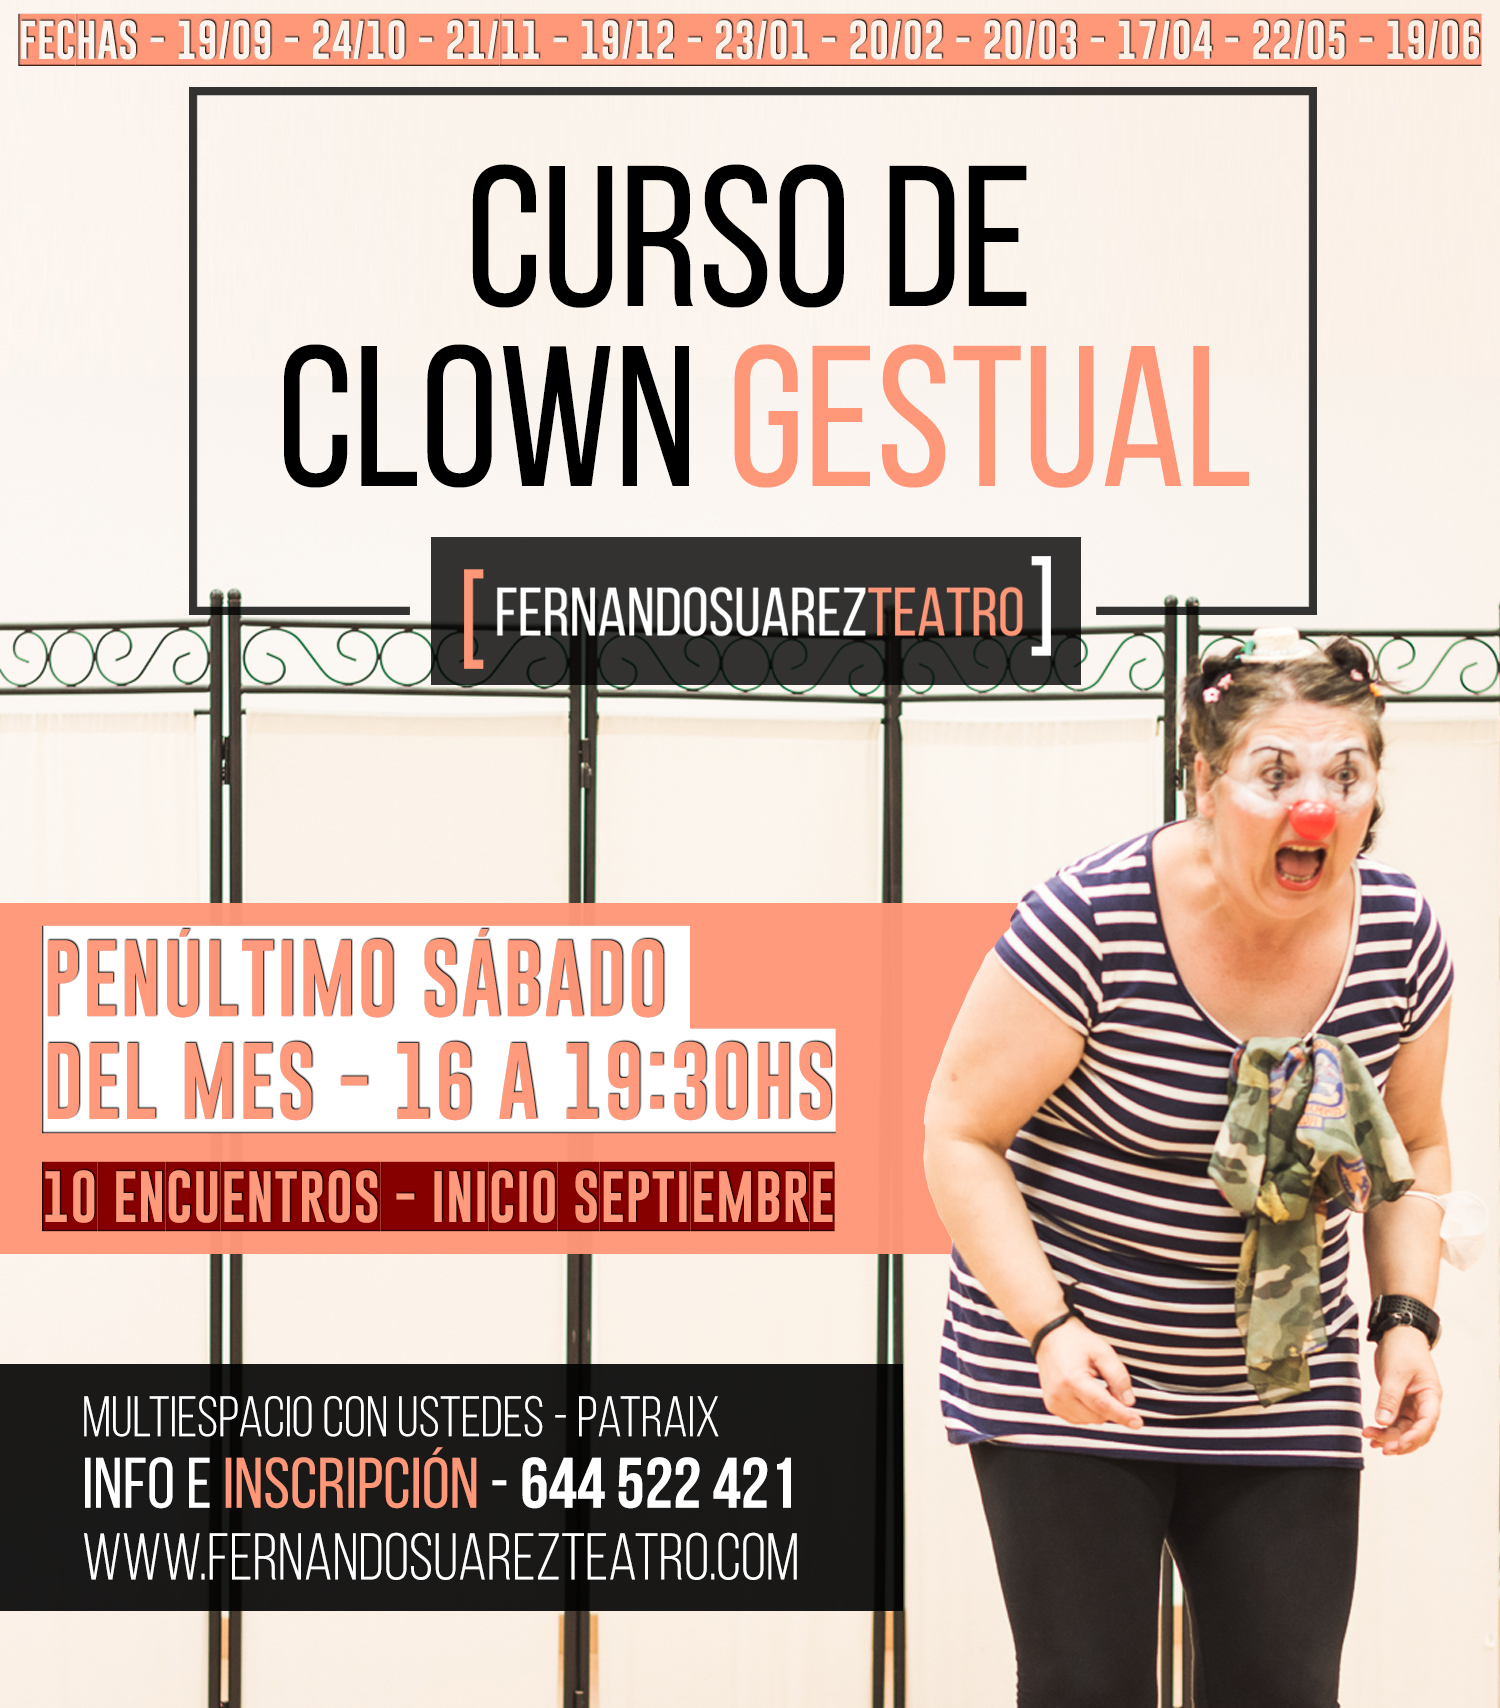 CLOWN GESTUAL